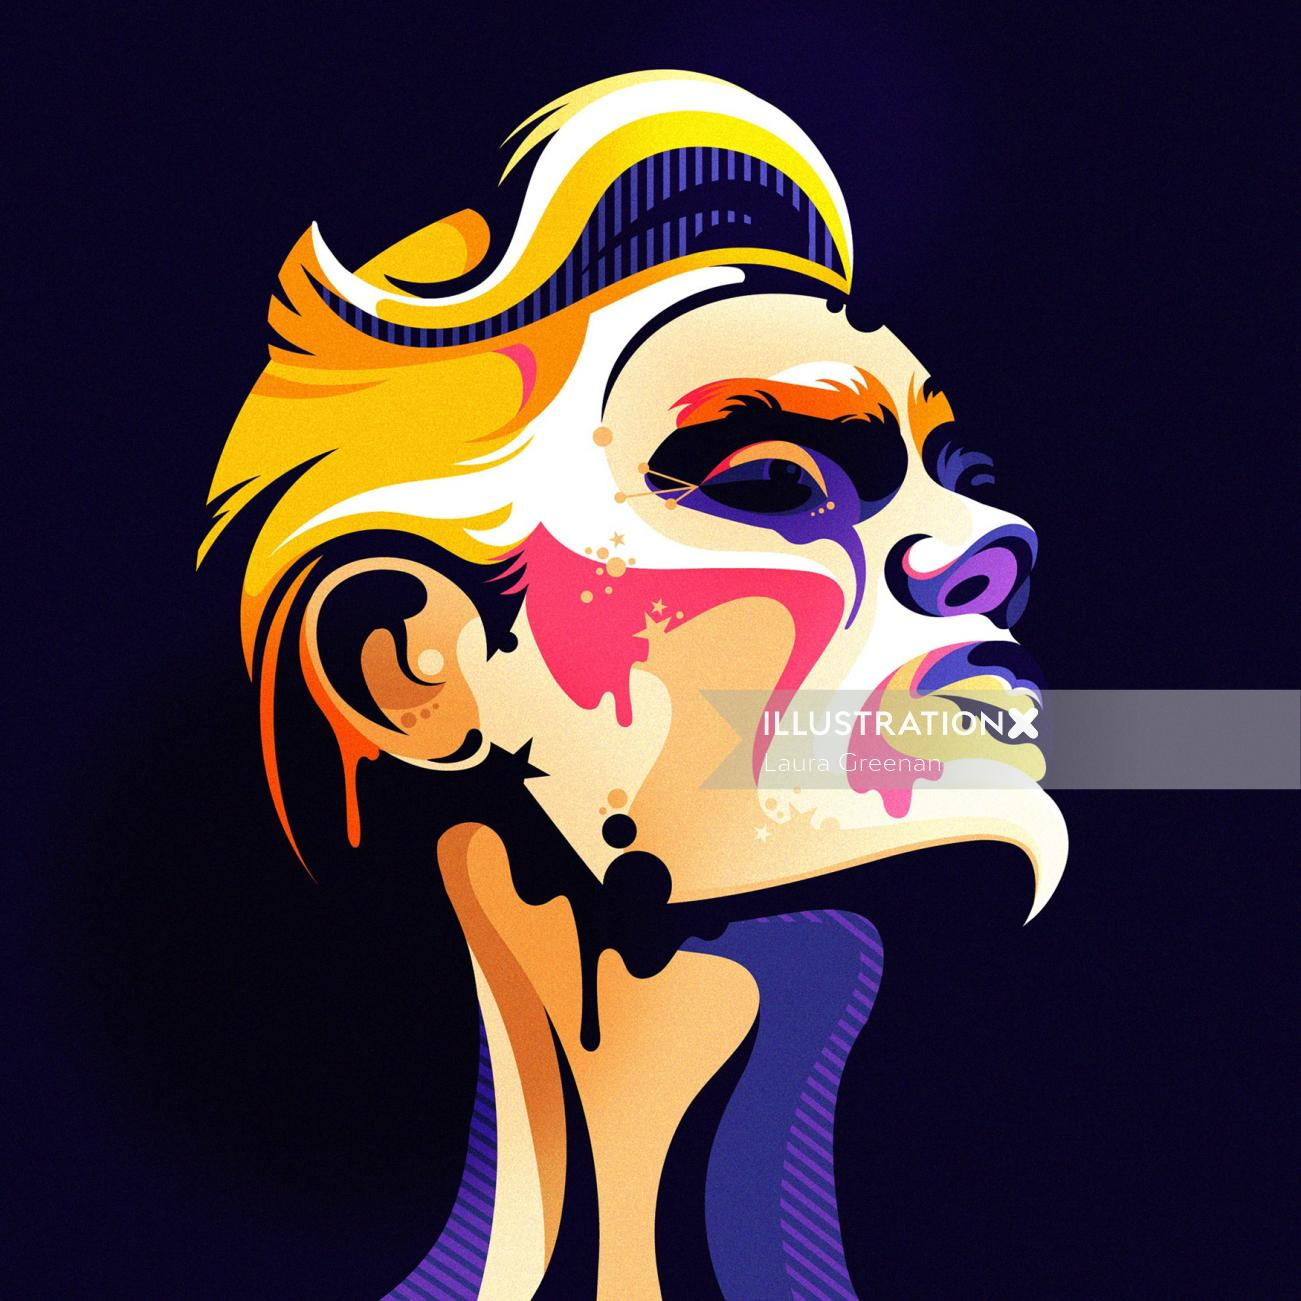 A colourful, imaginative, pop art style male portrait.